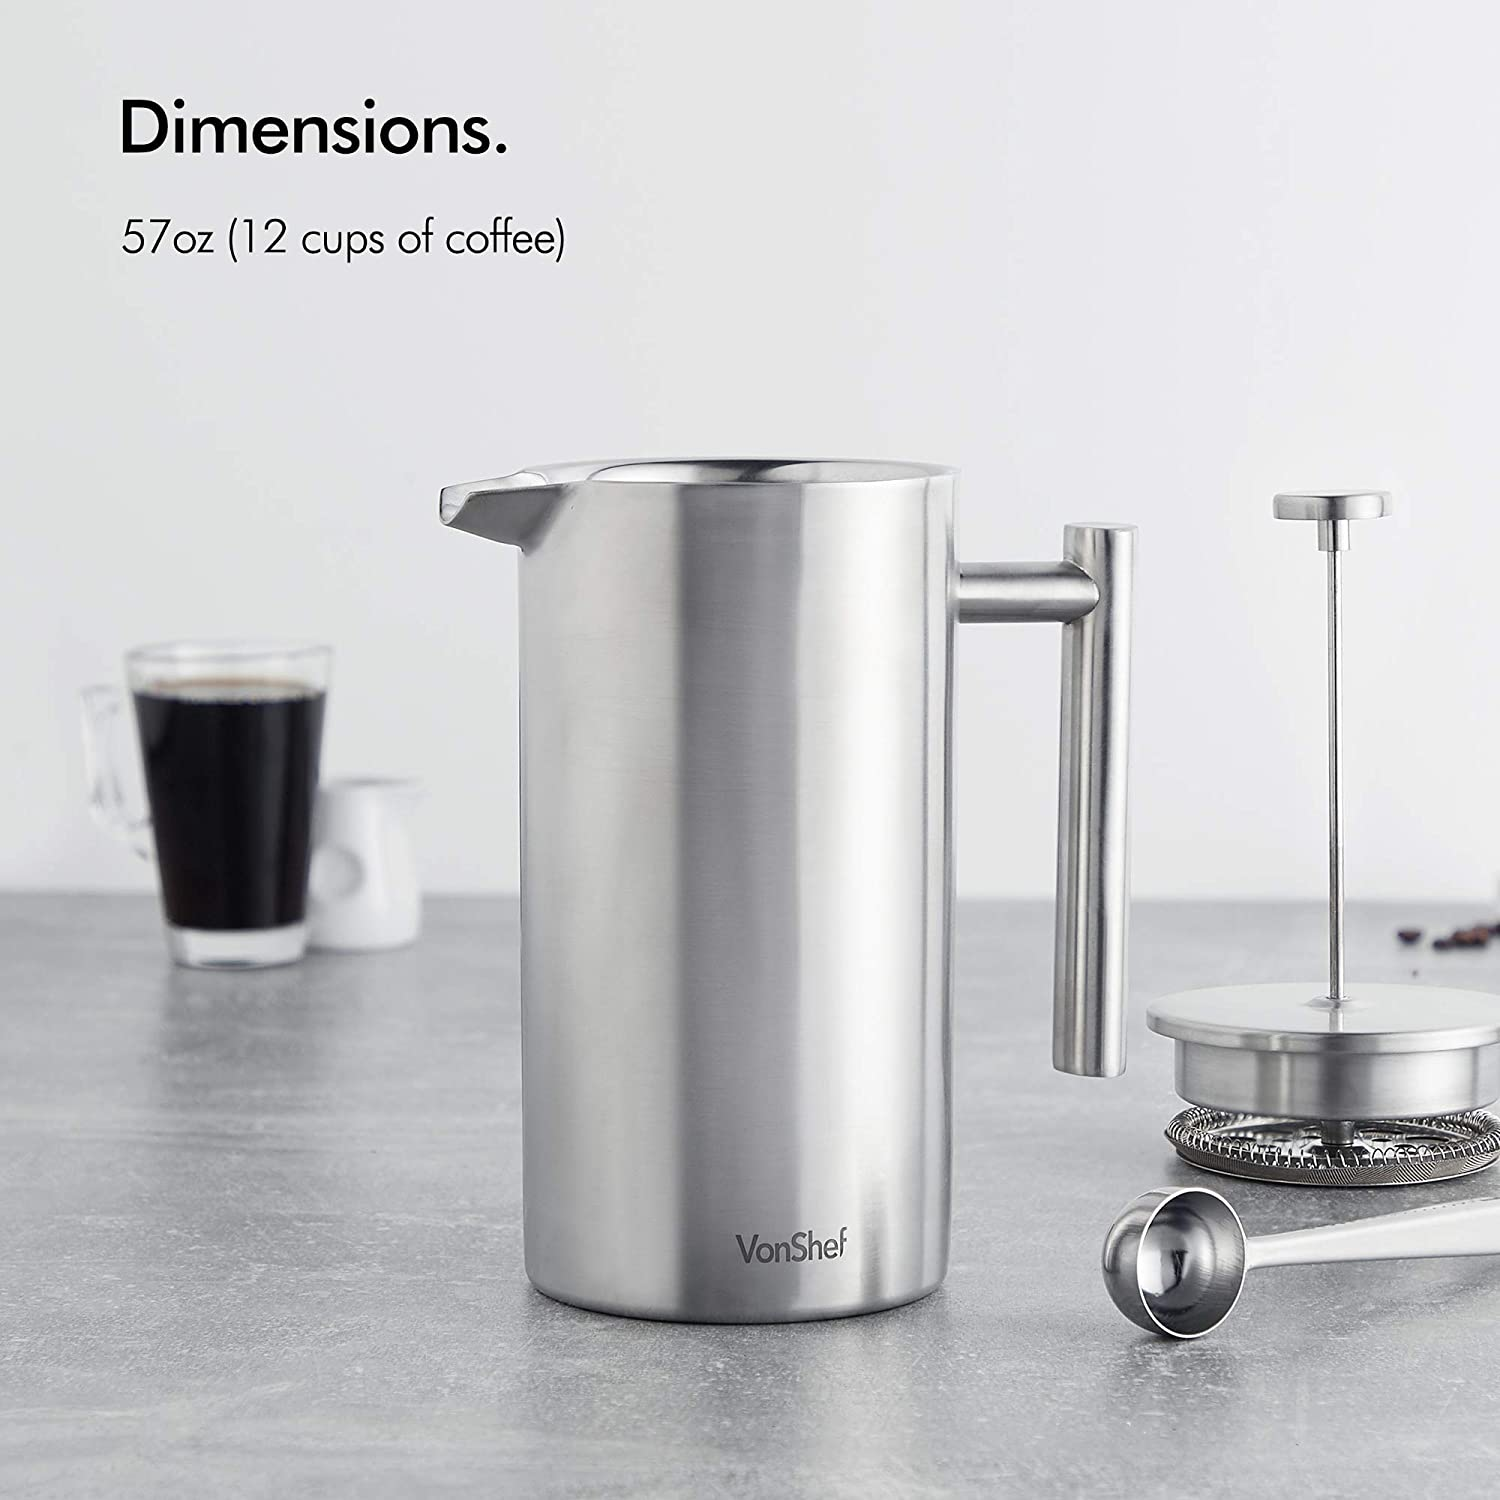 VonShef 12 Cup French Press Brushed Stainless Steel Double Walled Cafetiere Coffee Maker with Spoon and Filter